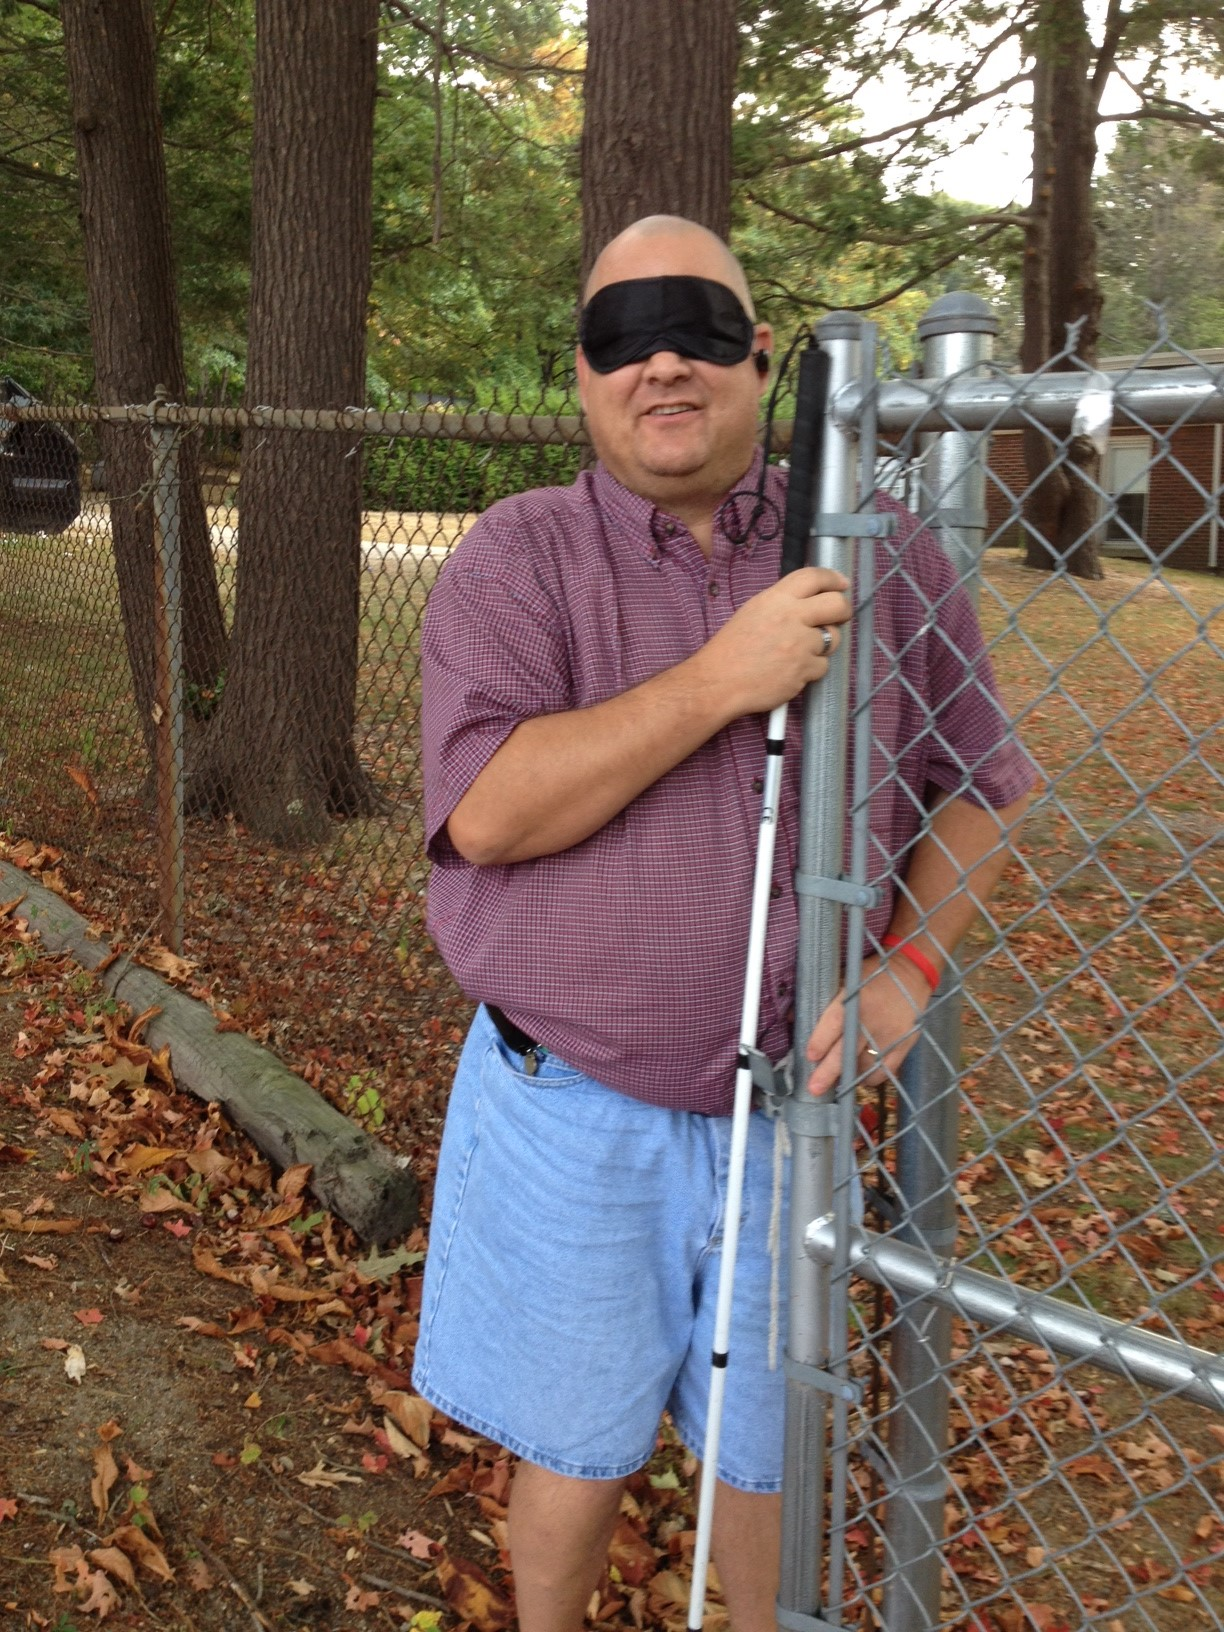 Doug White holds the gate partly open in the fence between the Carroll Center and the neighboring property. We were discussing how to reclaim good boundaries after vision loss. Doug comes from Oklahoma. He is married with 2 teenage sons. [A photo like this was posted on Facebook on Sept. 30 but the post was lost.]